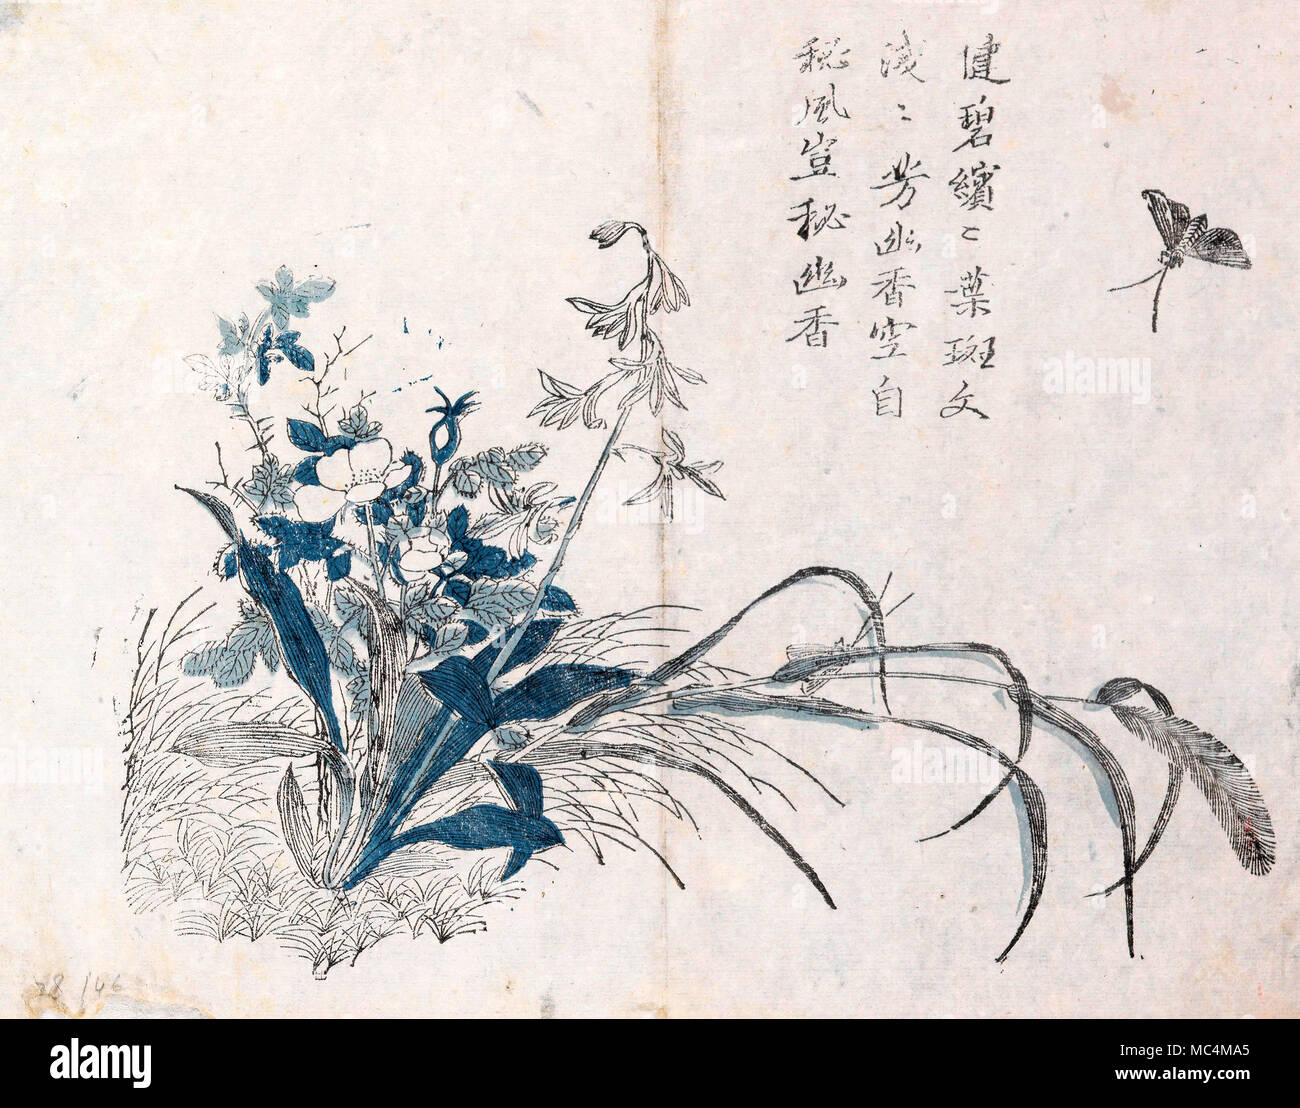 Anonymous, Japanese, Untitled. From The Manual of the Mustard Seed Garden for Painters. Circa 1801-1825. Woodblock print on paper.  	 - Stock Image